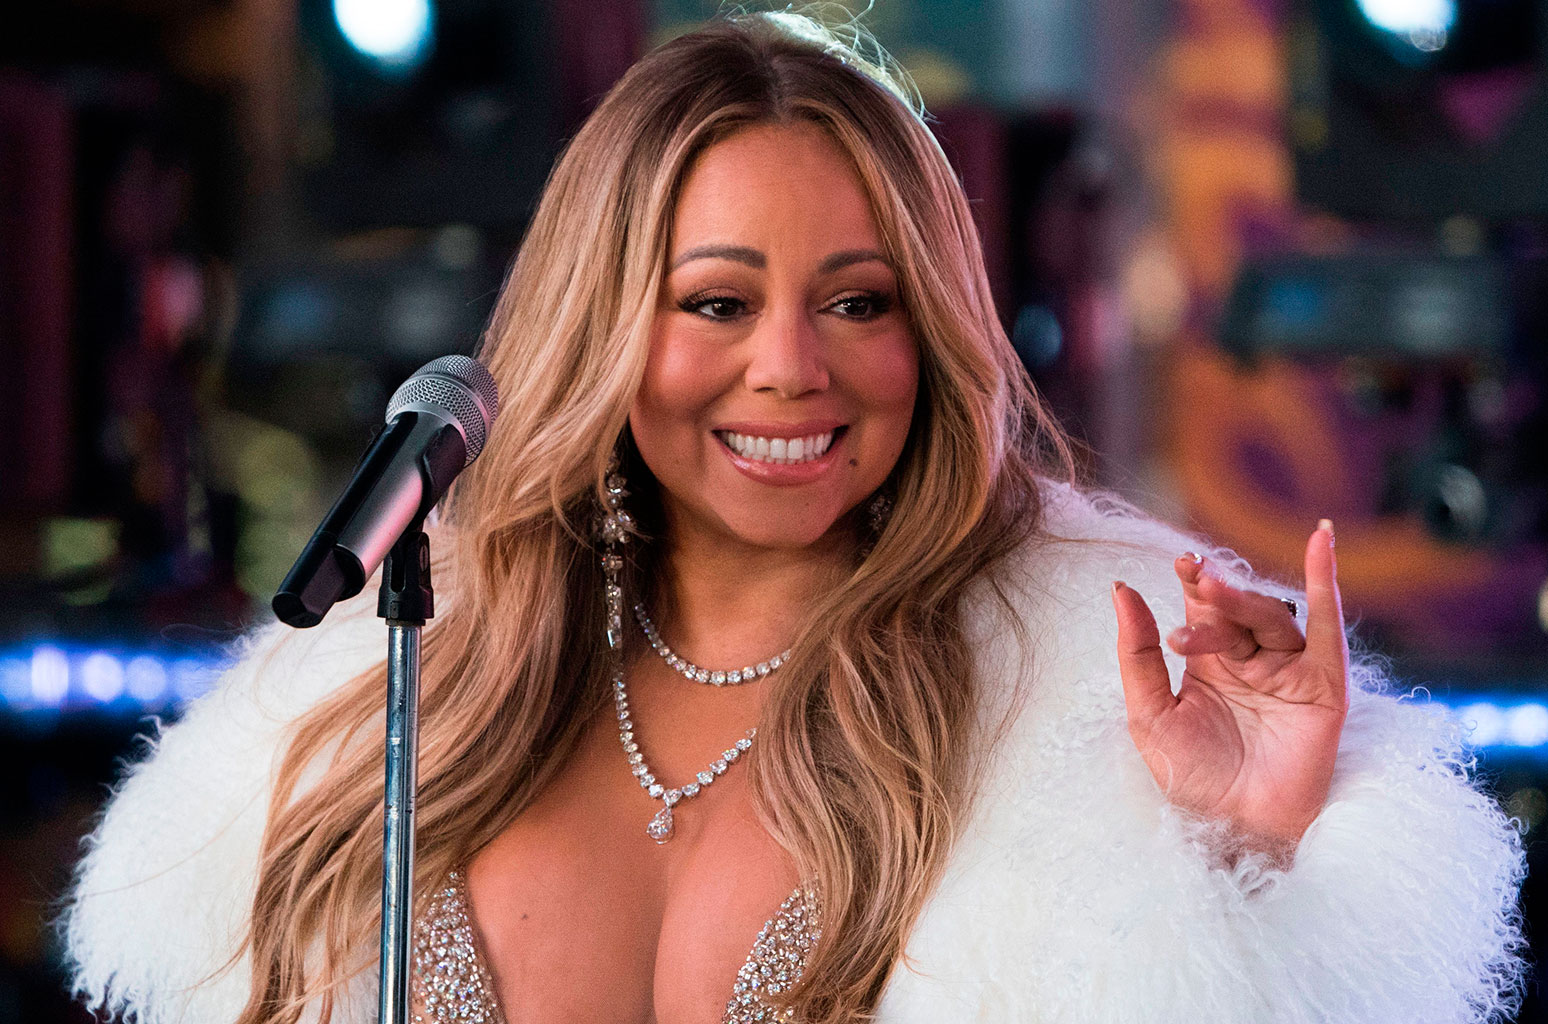 mariah carey most hated women in hollywood